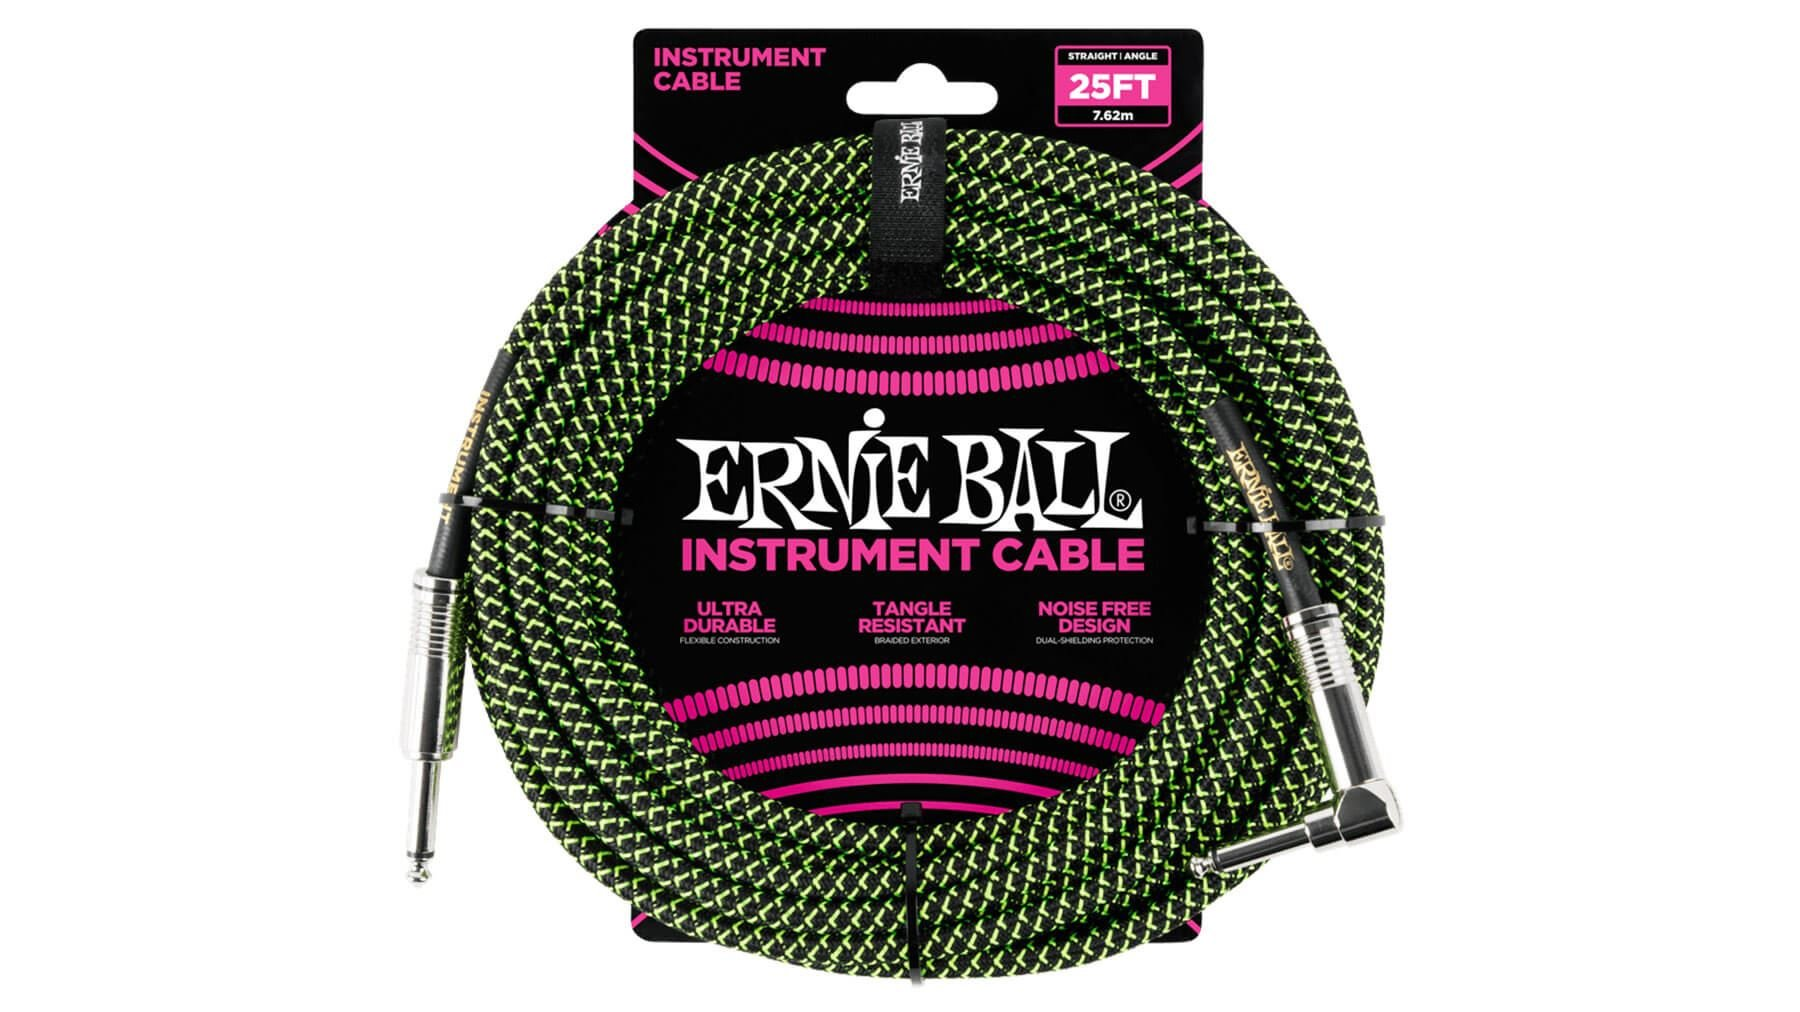 Ernie Ball 25 FT Straight to Angle Instrument Cable  Black and Green